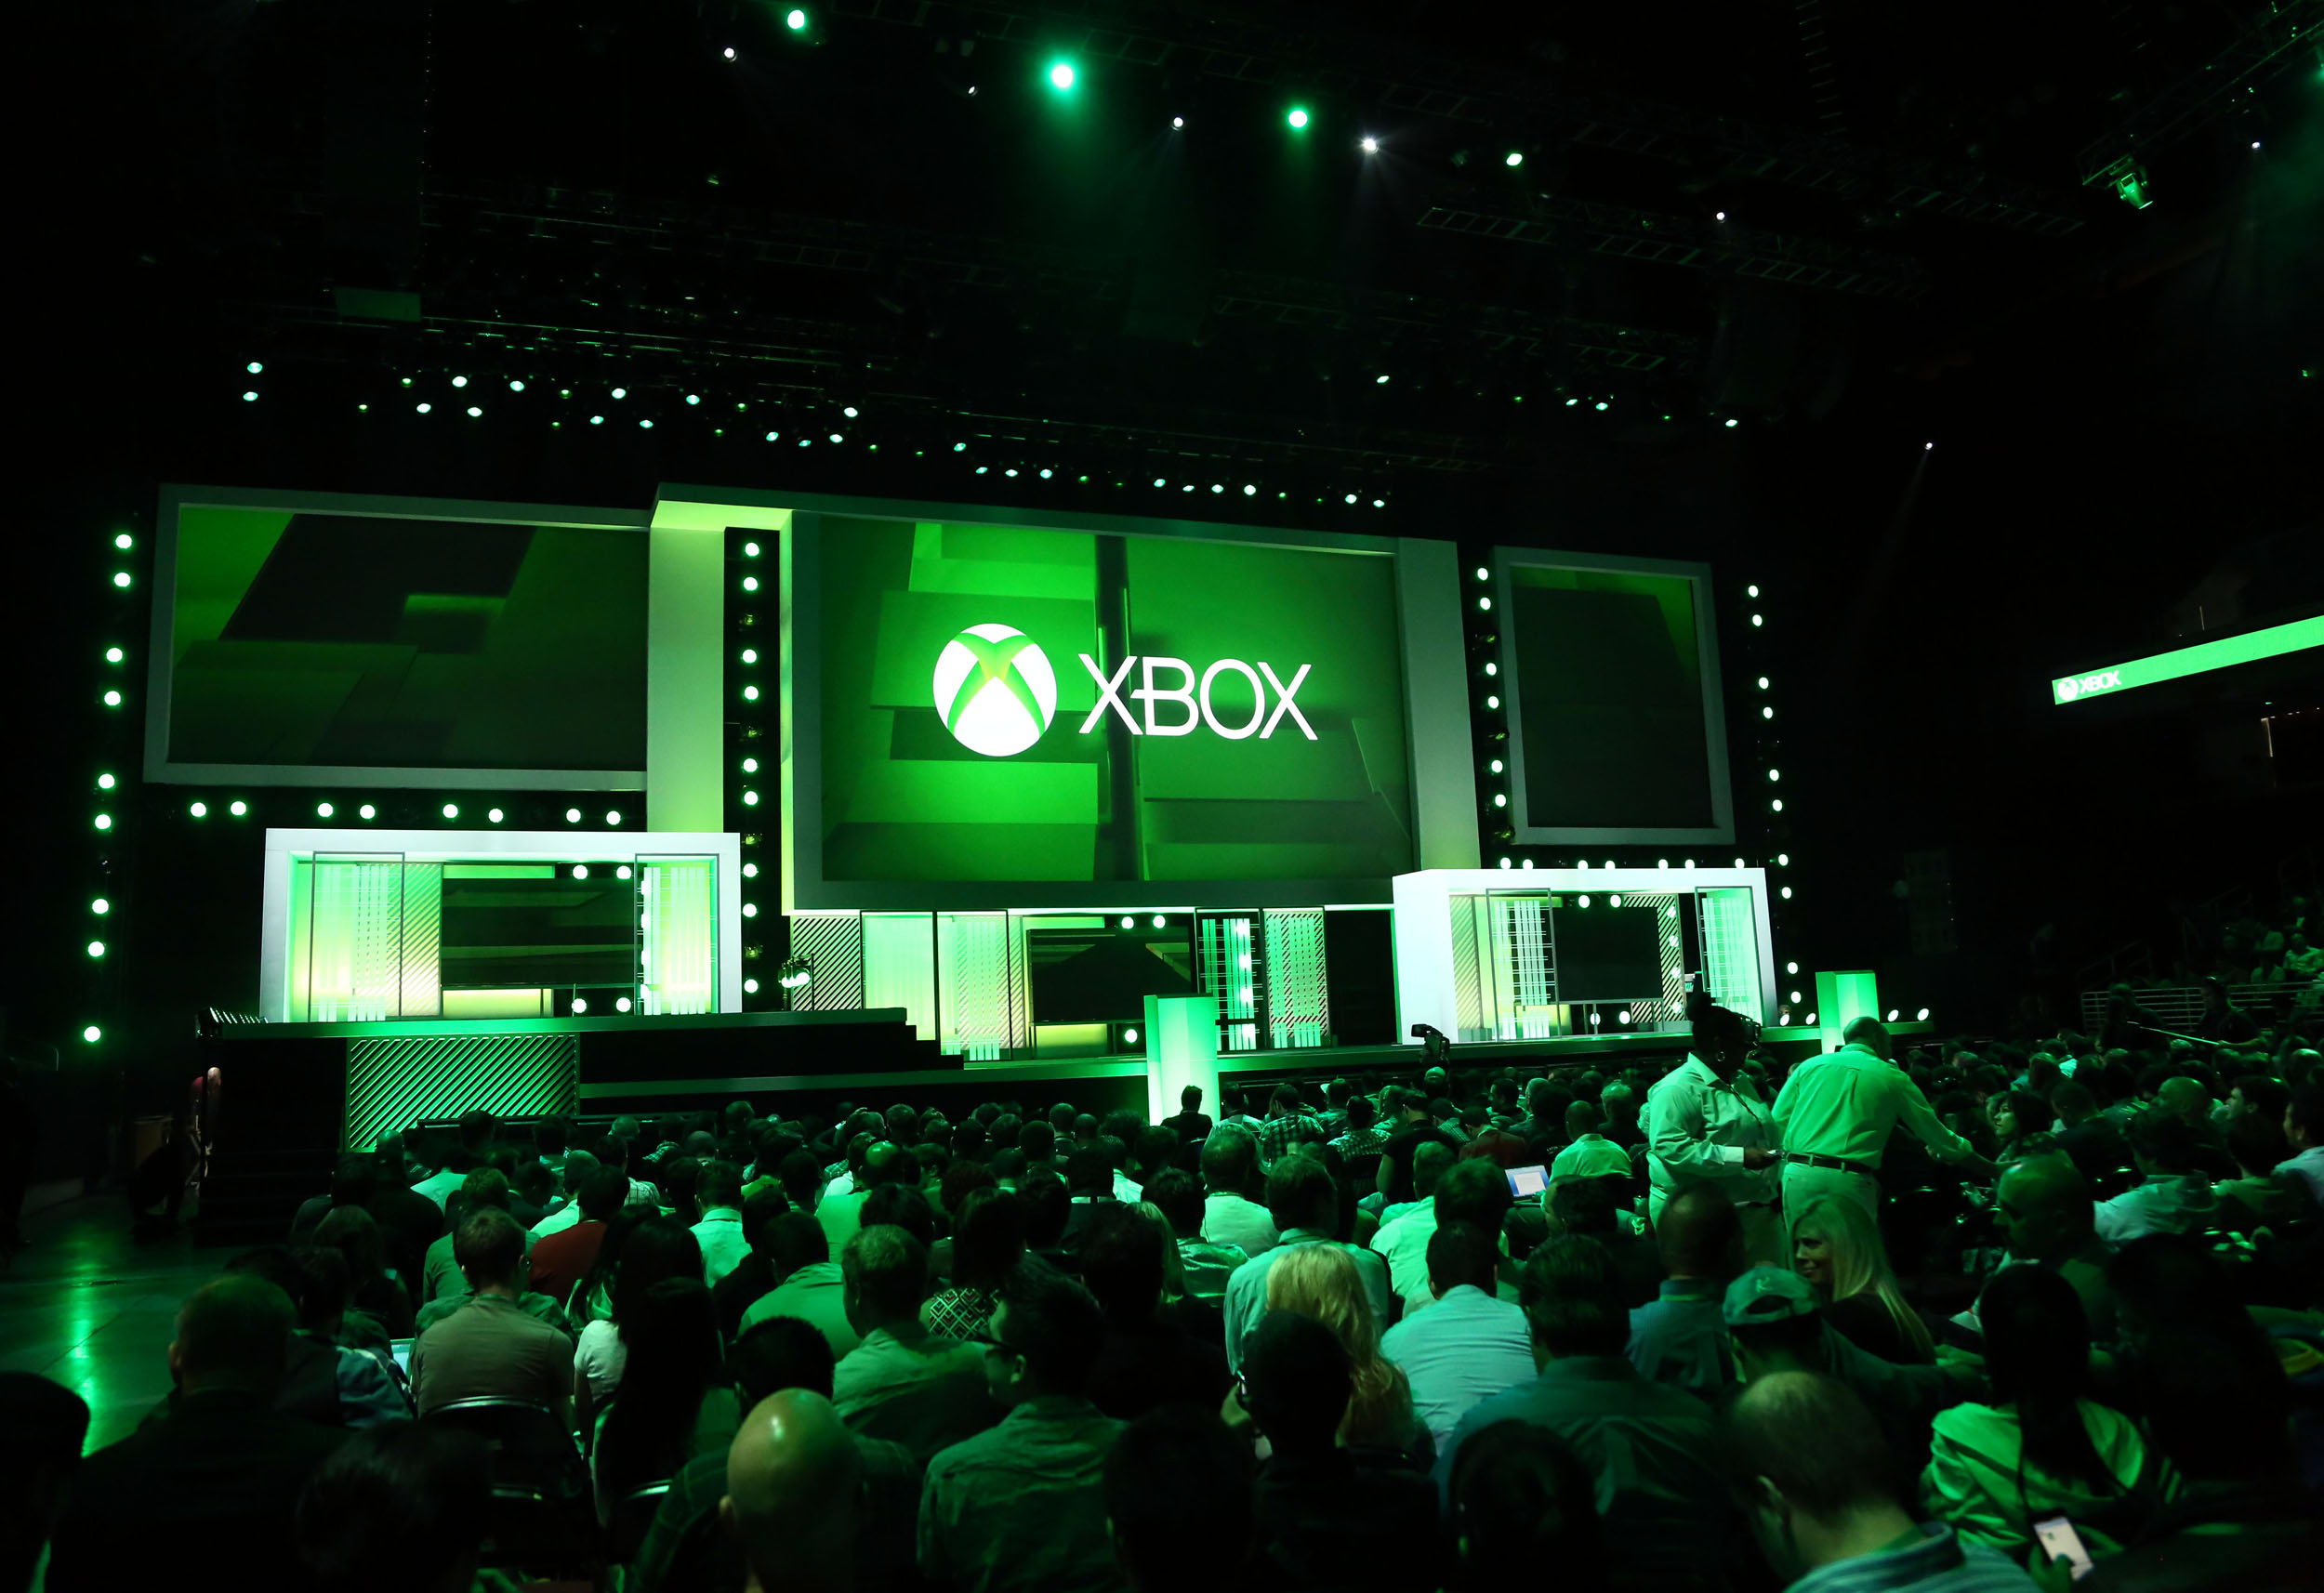 IMAGE DISTRIBUTED FOR MICROSOFT - Xbox E3 2013 Media Briefing at E3 2013 at the Galen Center on Monday, June 10, 2013 in Los Angeles. (Photo by Matt Sayles/Invision for Microsoft/AP Images)